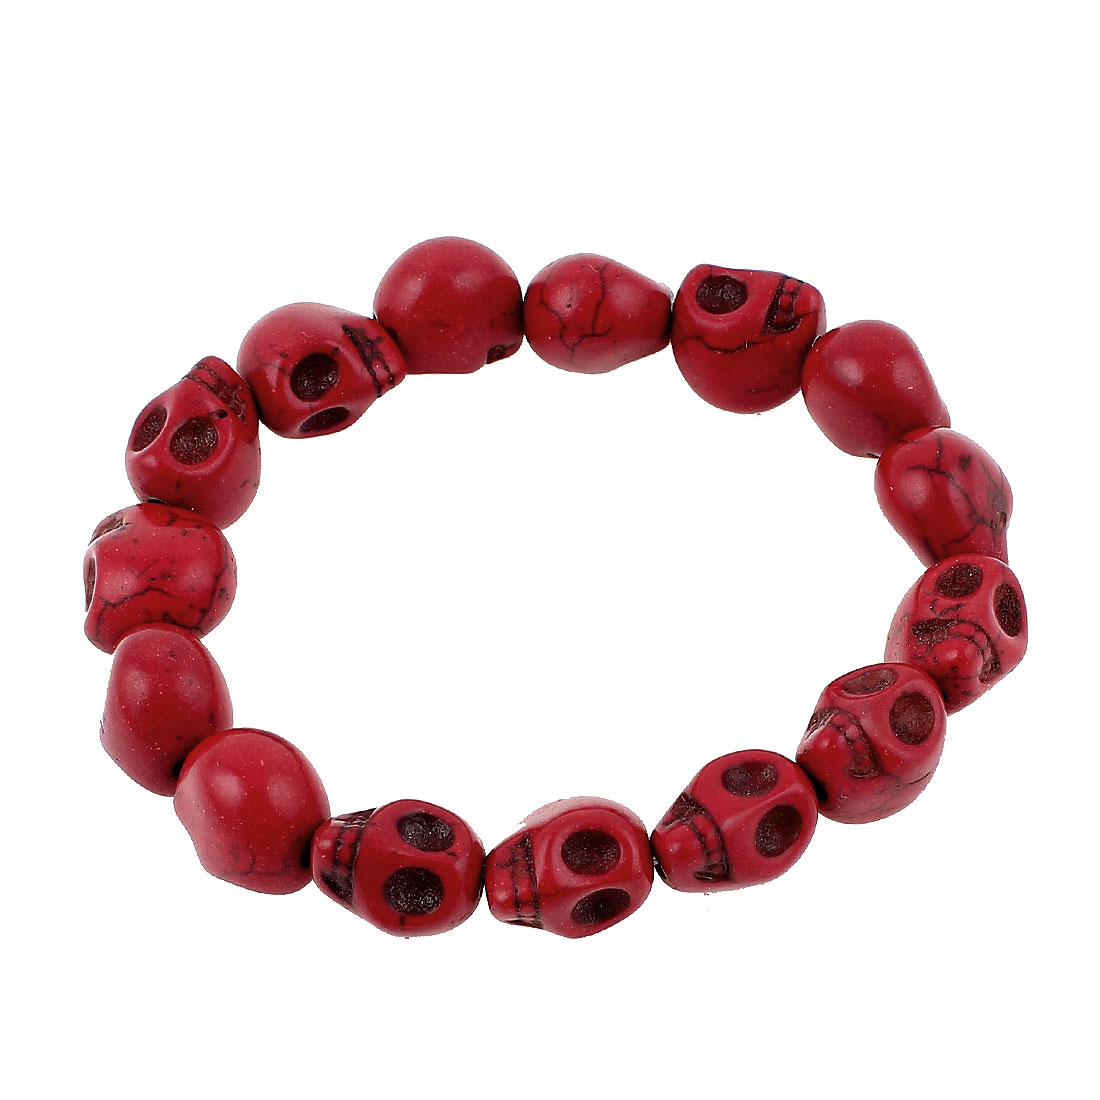 Red Stone Skull Head Shaped Beaded Elastic Linked Wrist Chain Bangle Bracelet for Lady